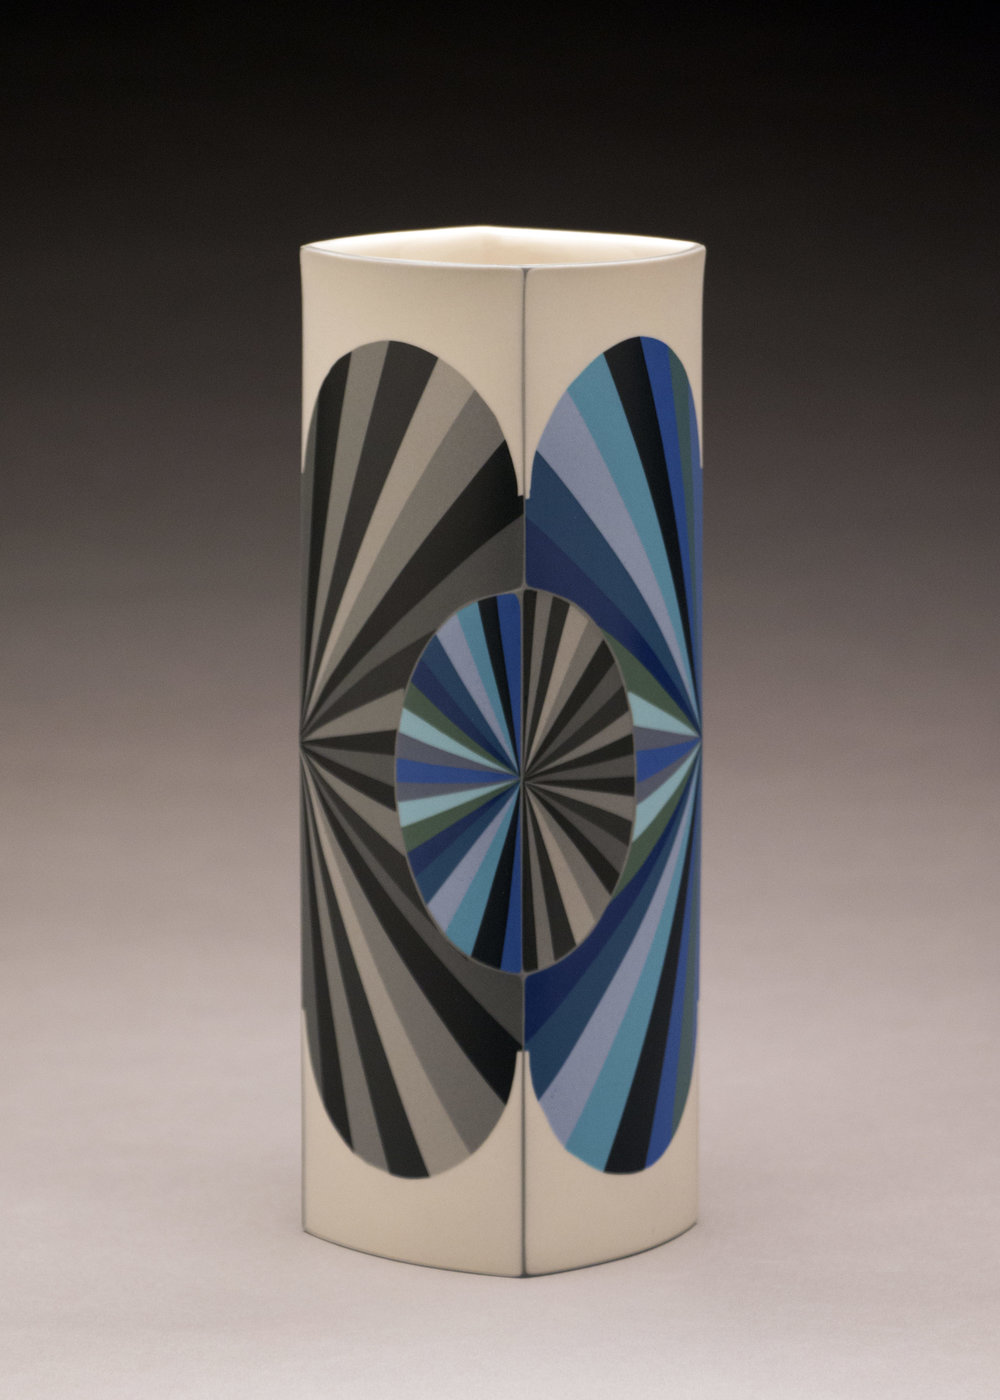 Peter Pincus,  Inversion Column  (side A), 2018, colored porcelain, 9.5 x 4 x 4 inches, $1800.